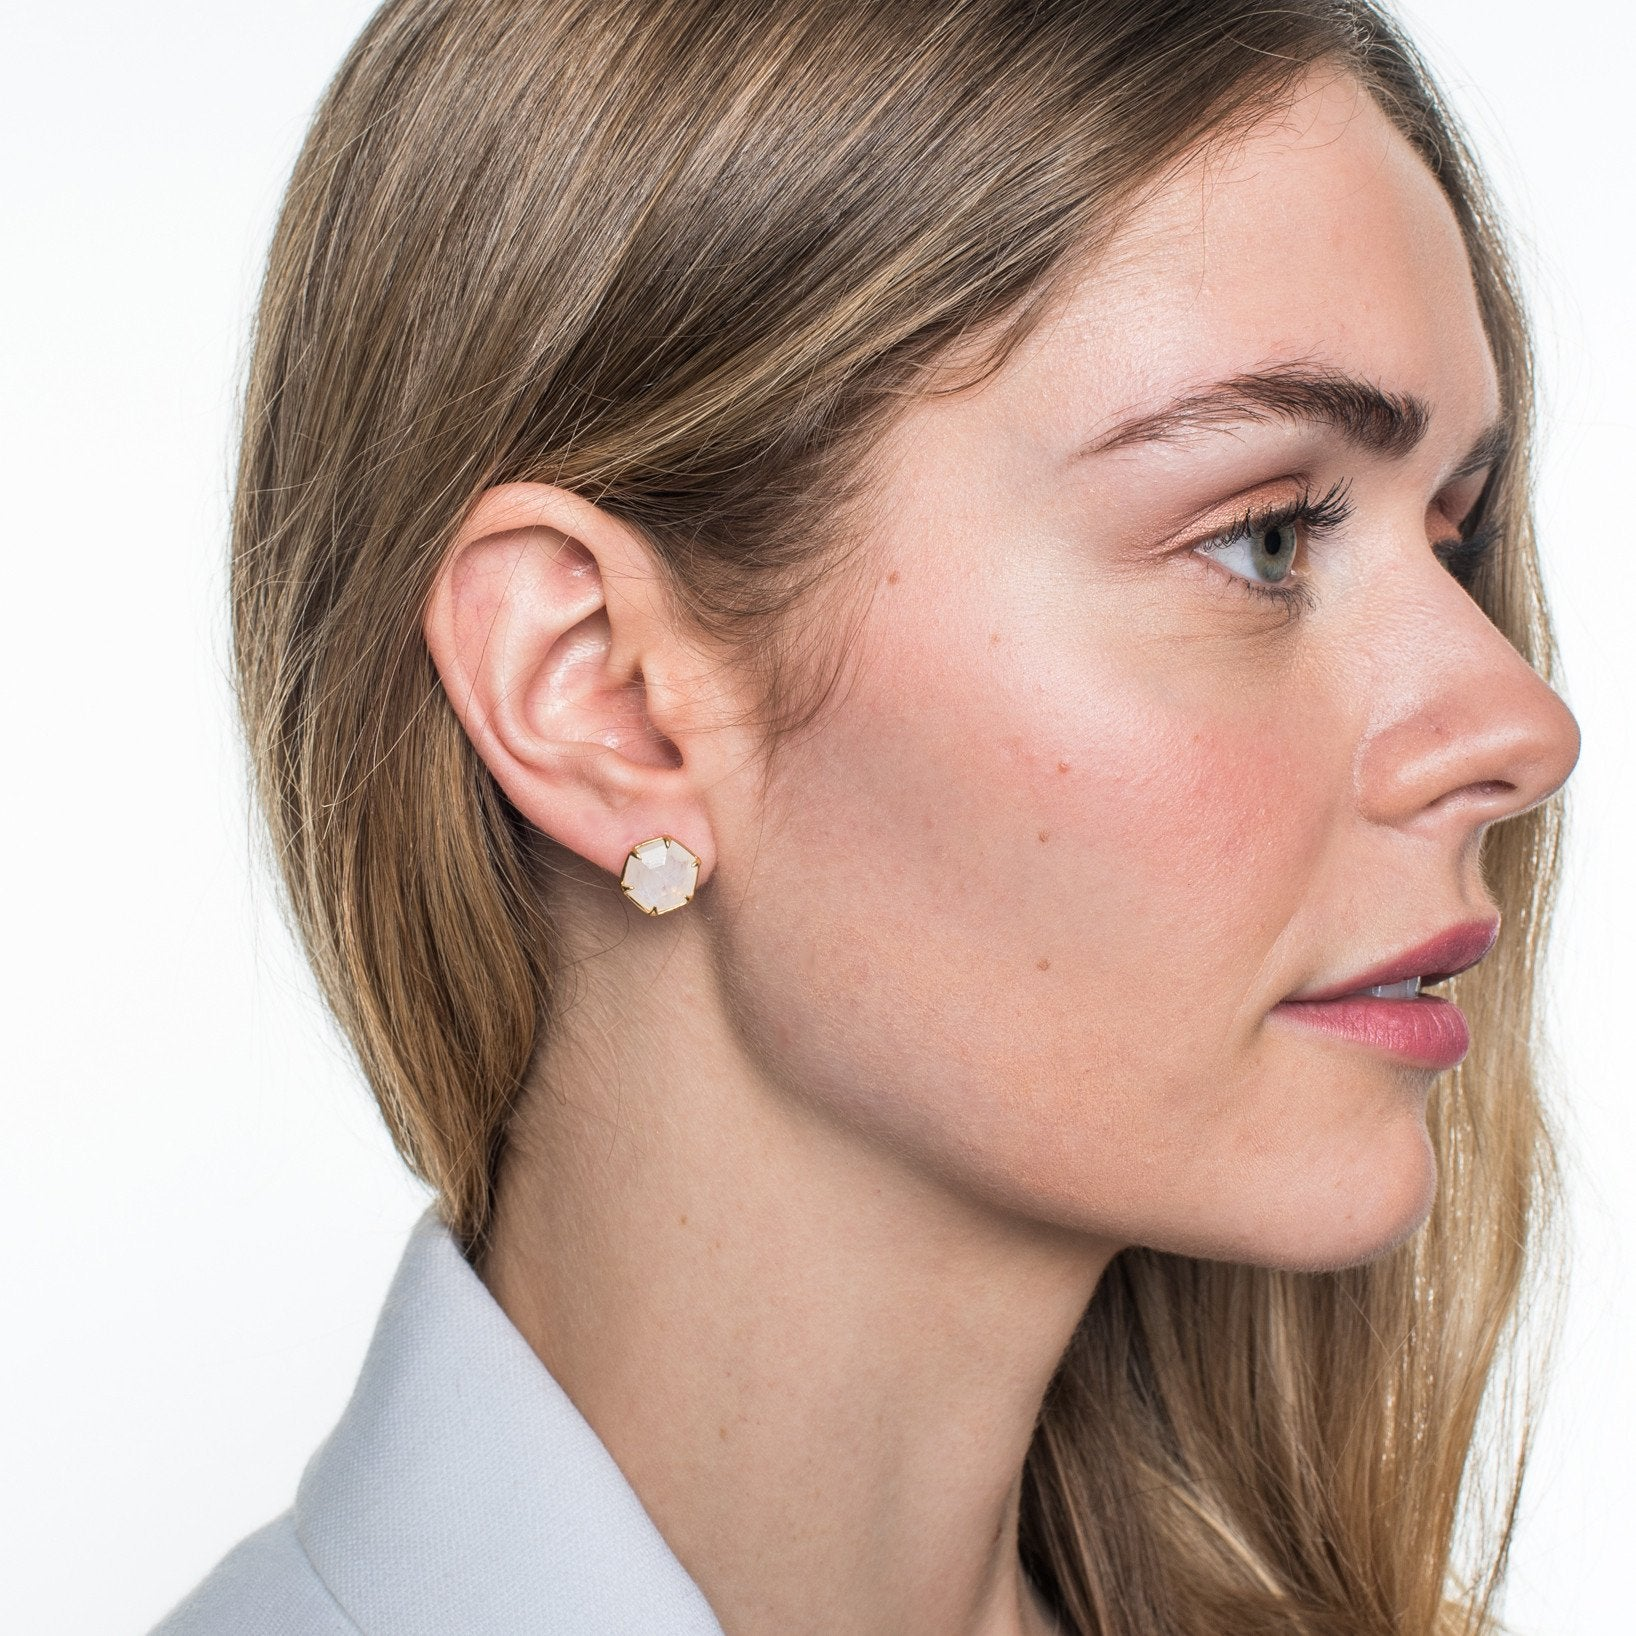 GRACE HEXAGON STUD EARRINGS - RAINBOW MOONSTONE & GOLD - SO PRETTY CARA COTTER